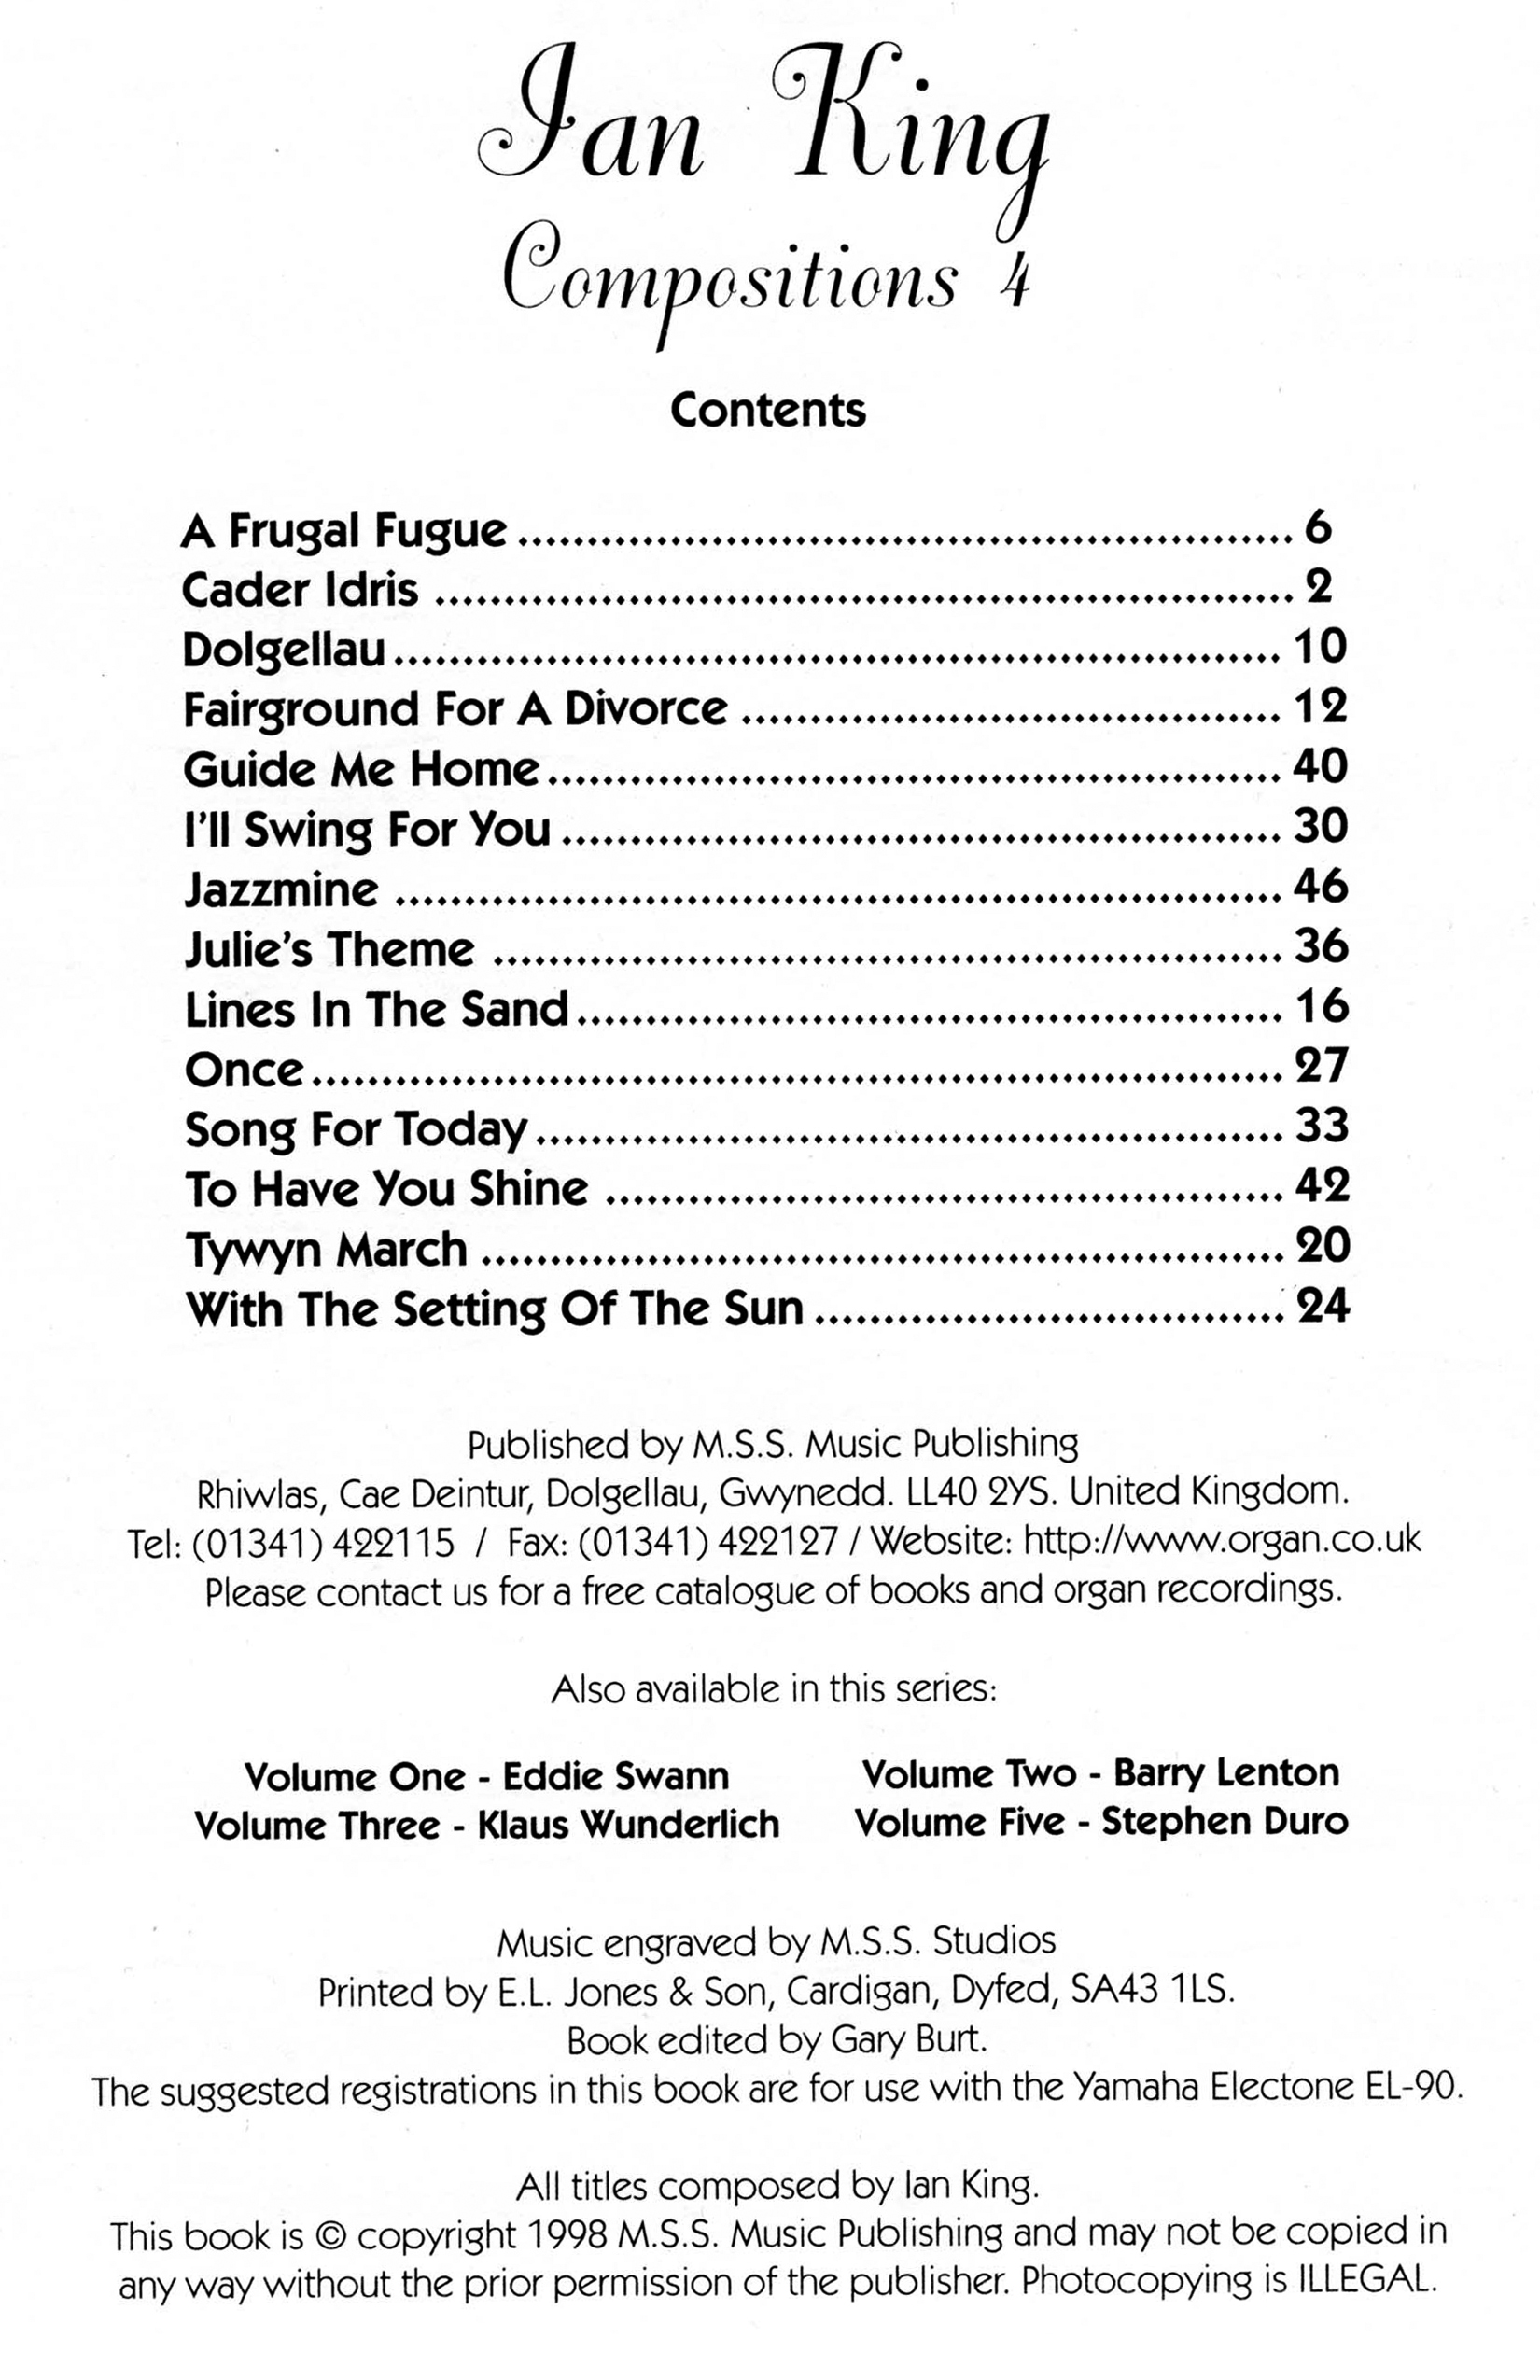 Contents Page of the Book